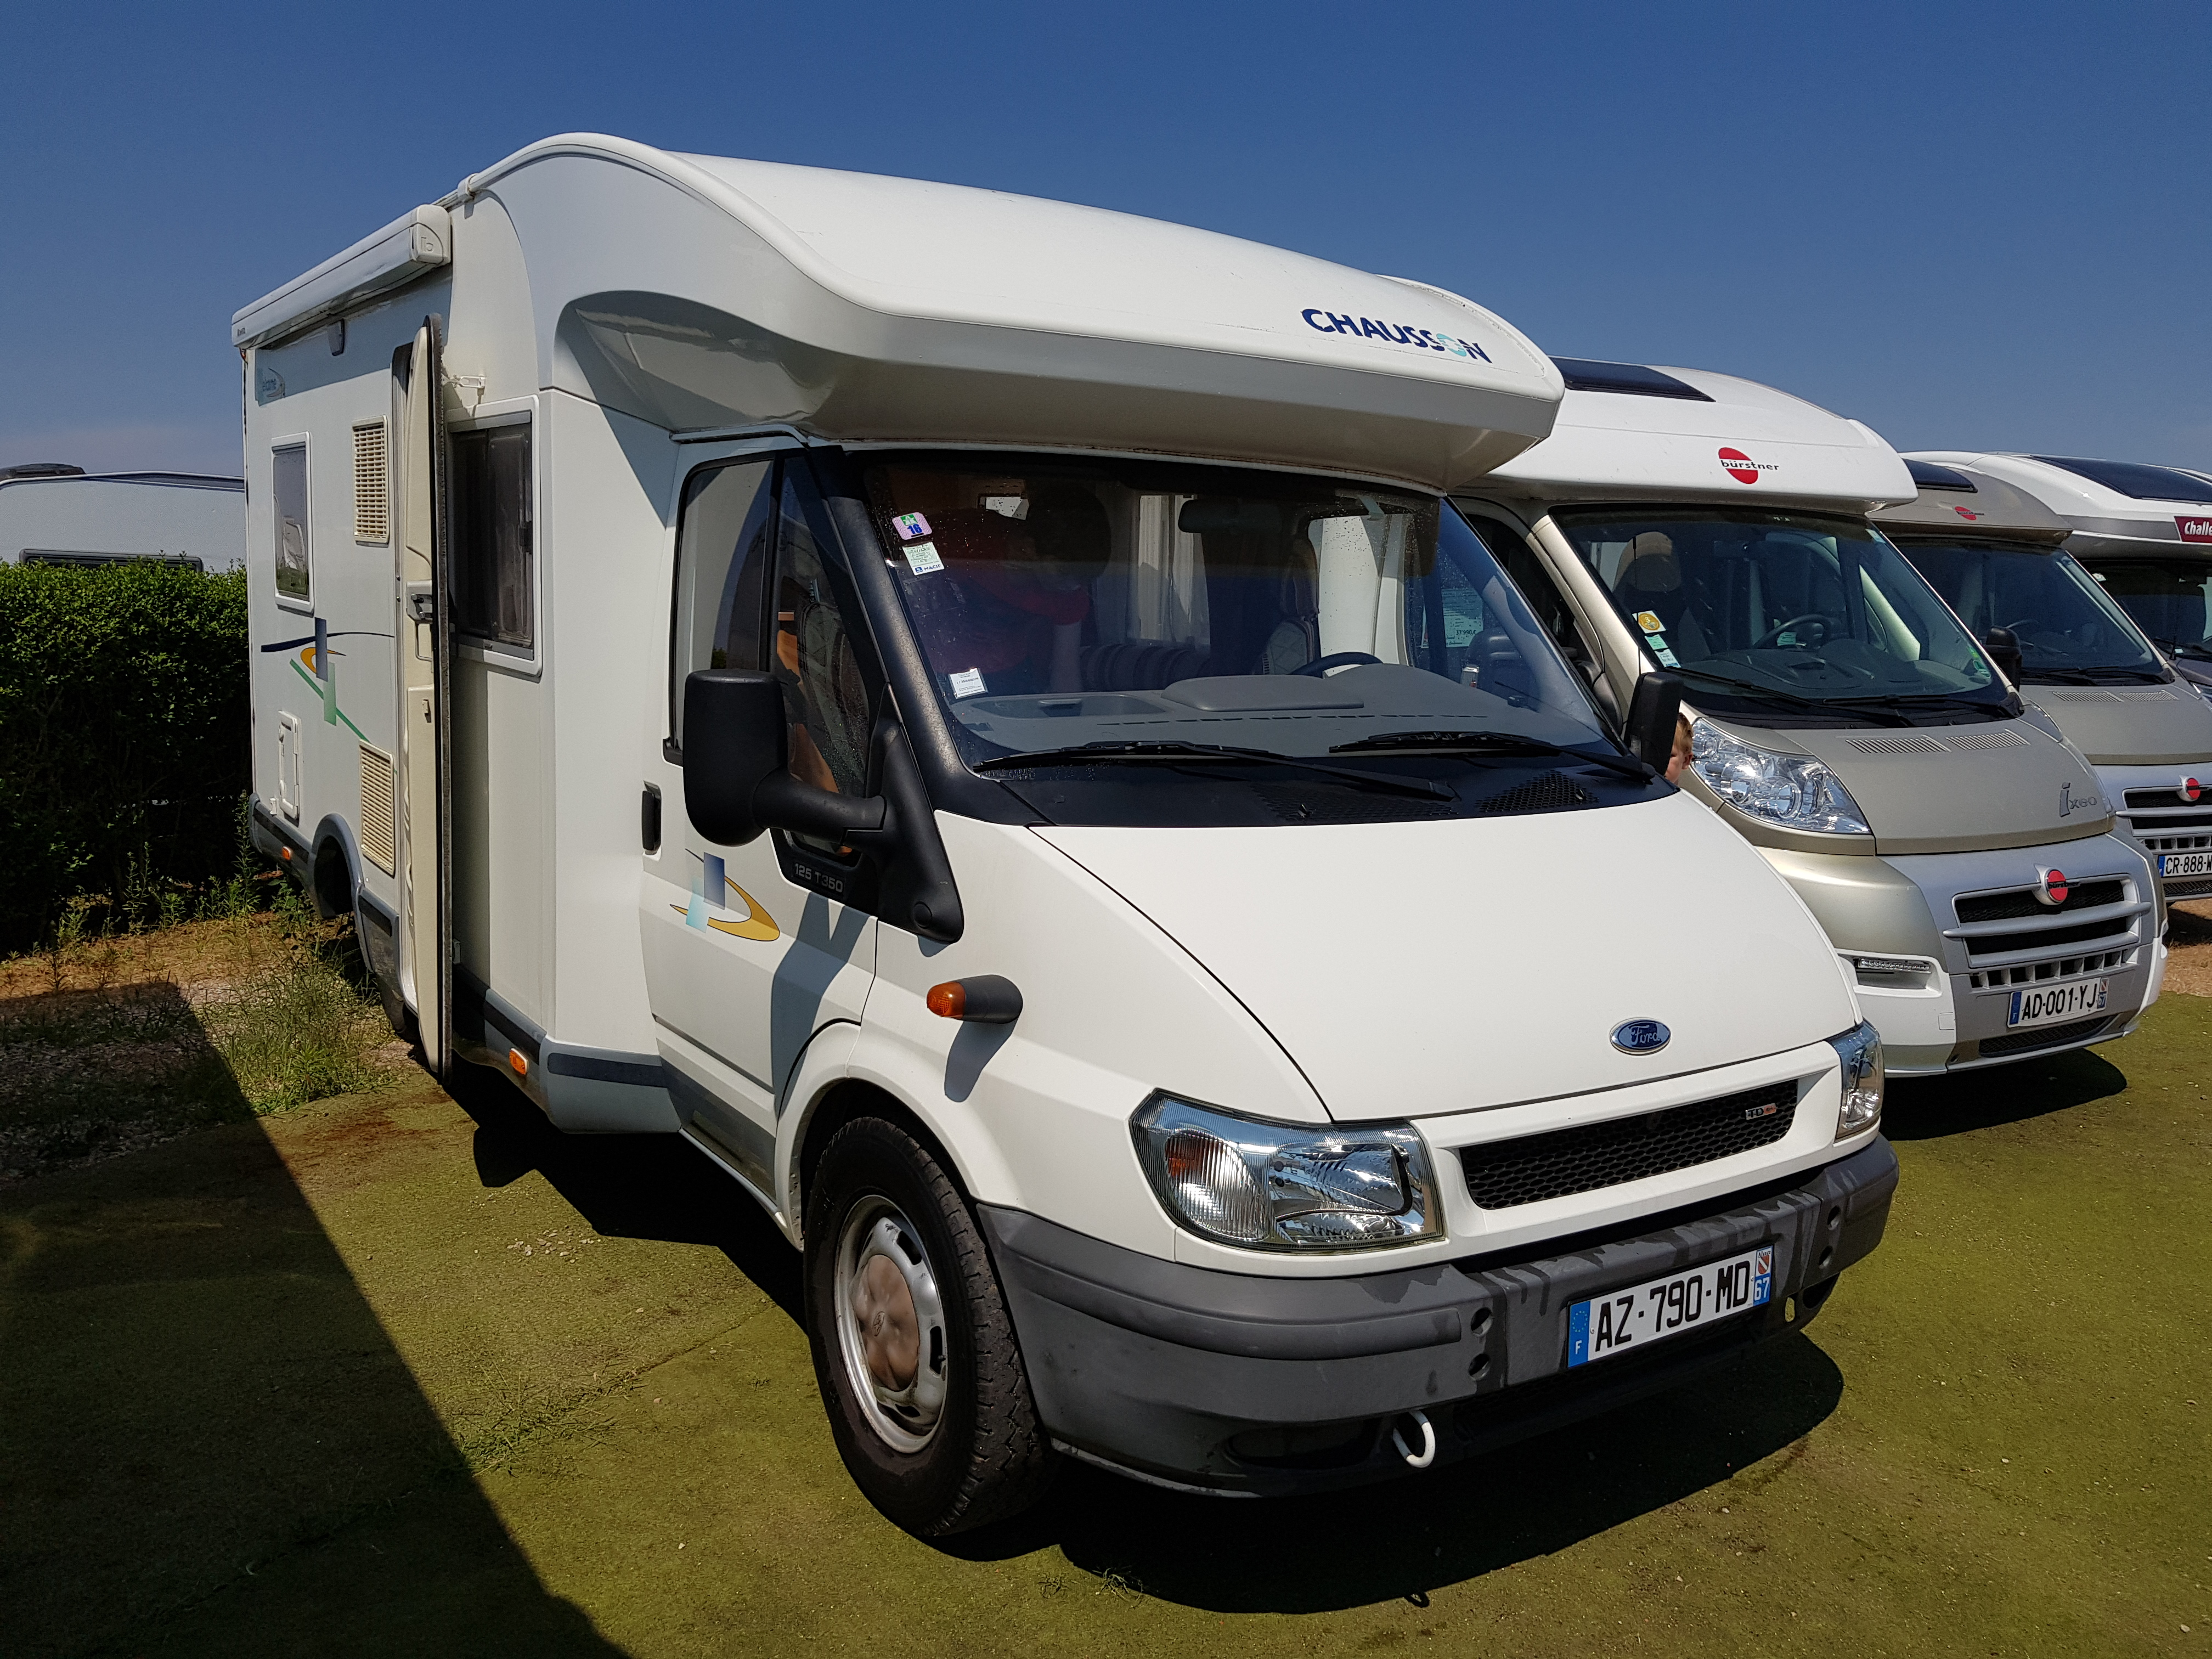 Chausson Welcom 74 - 1